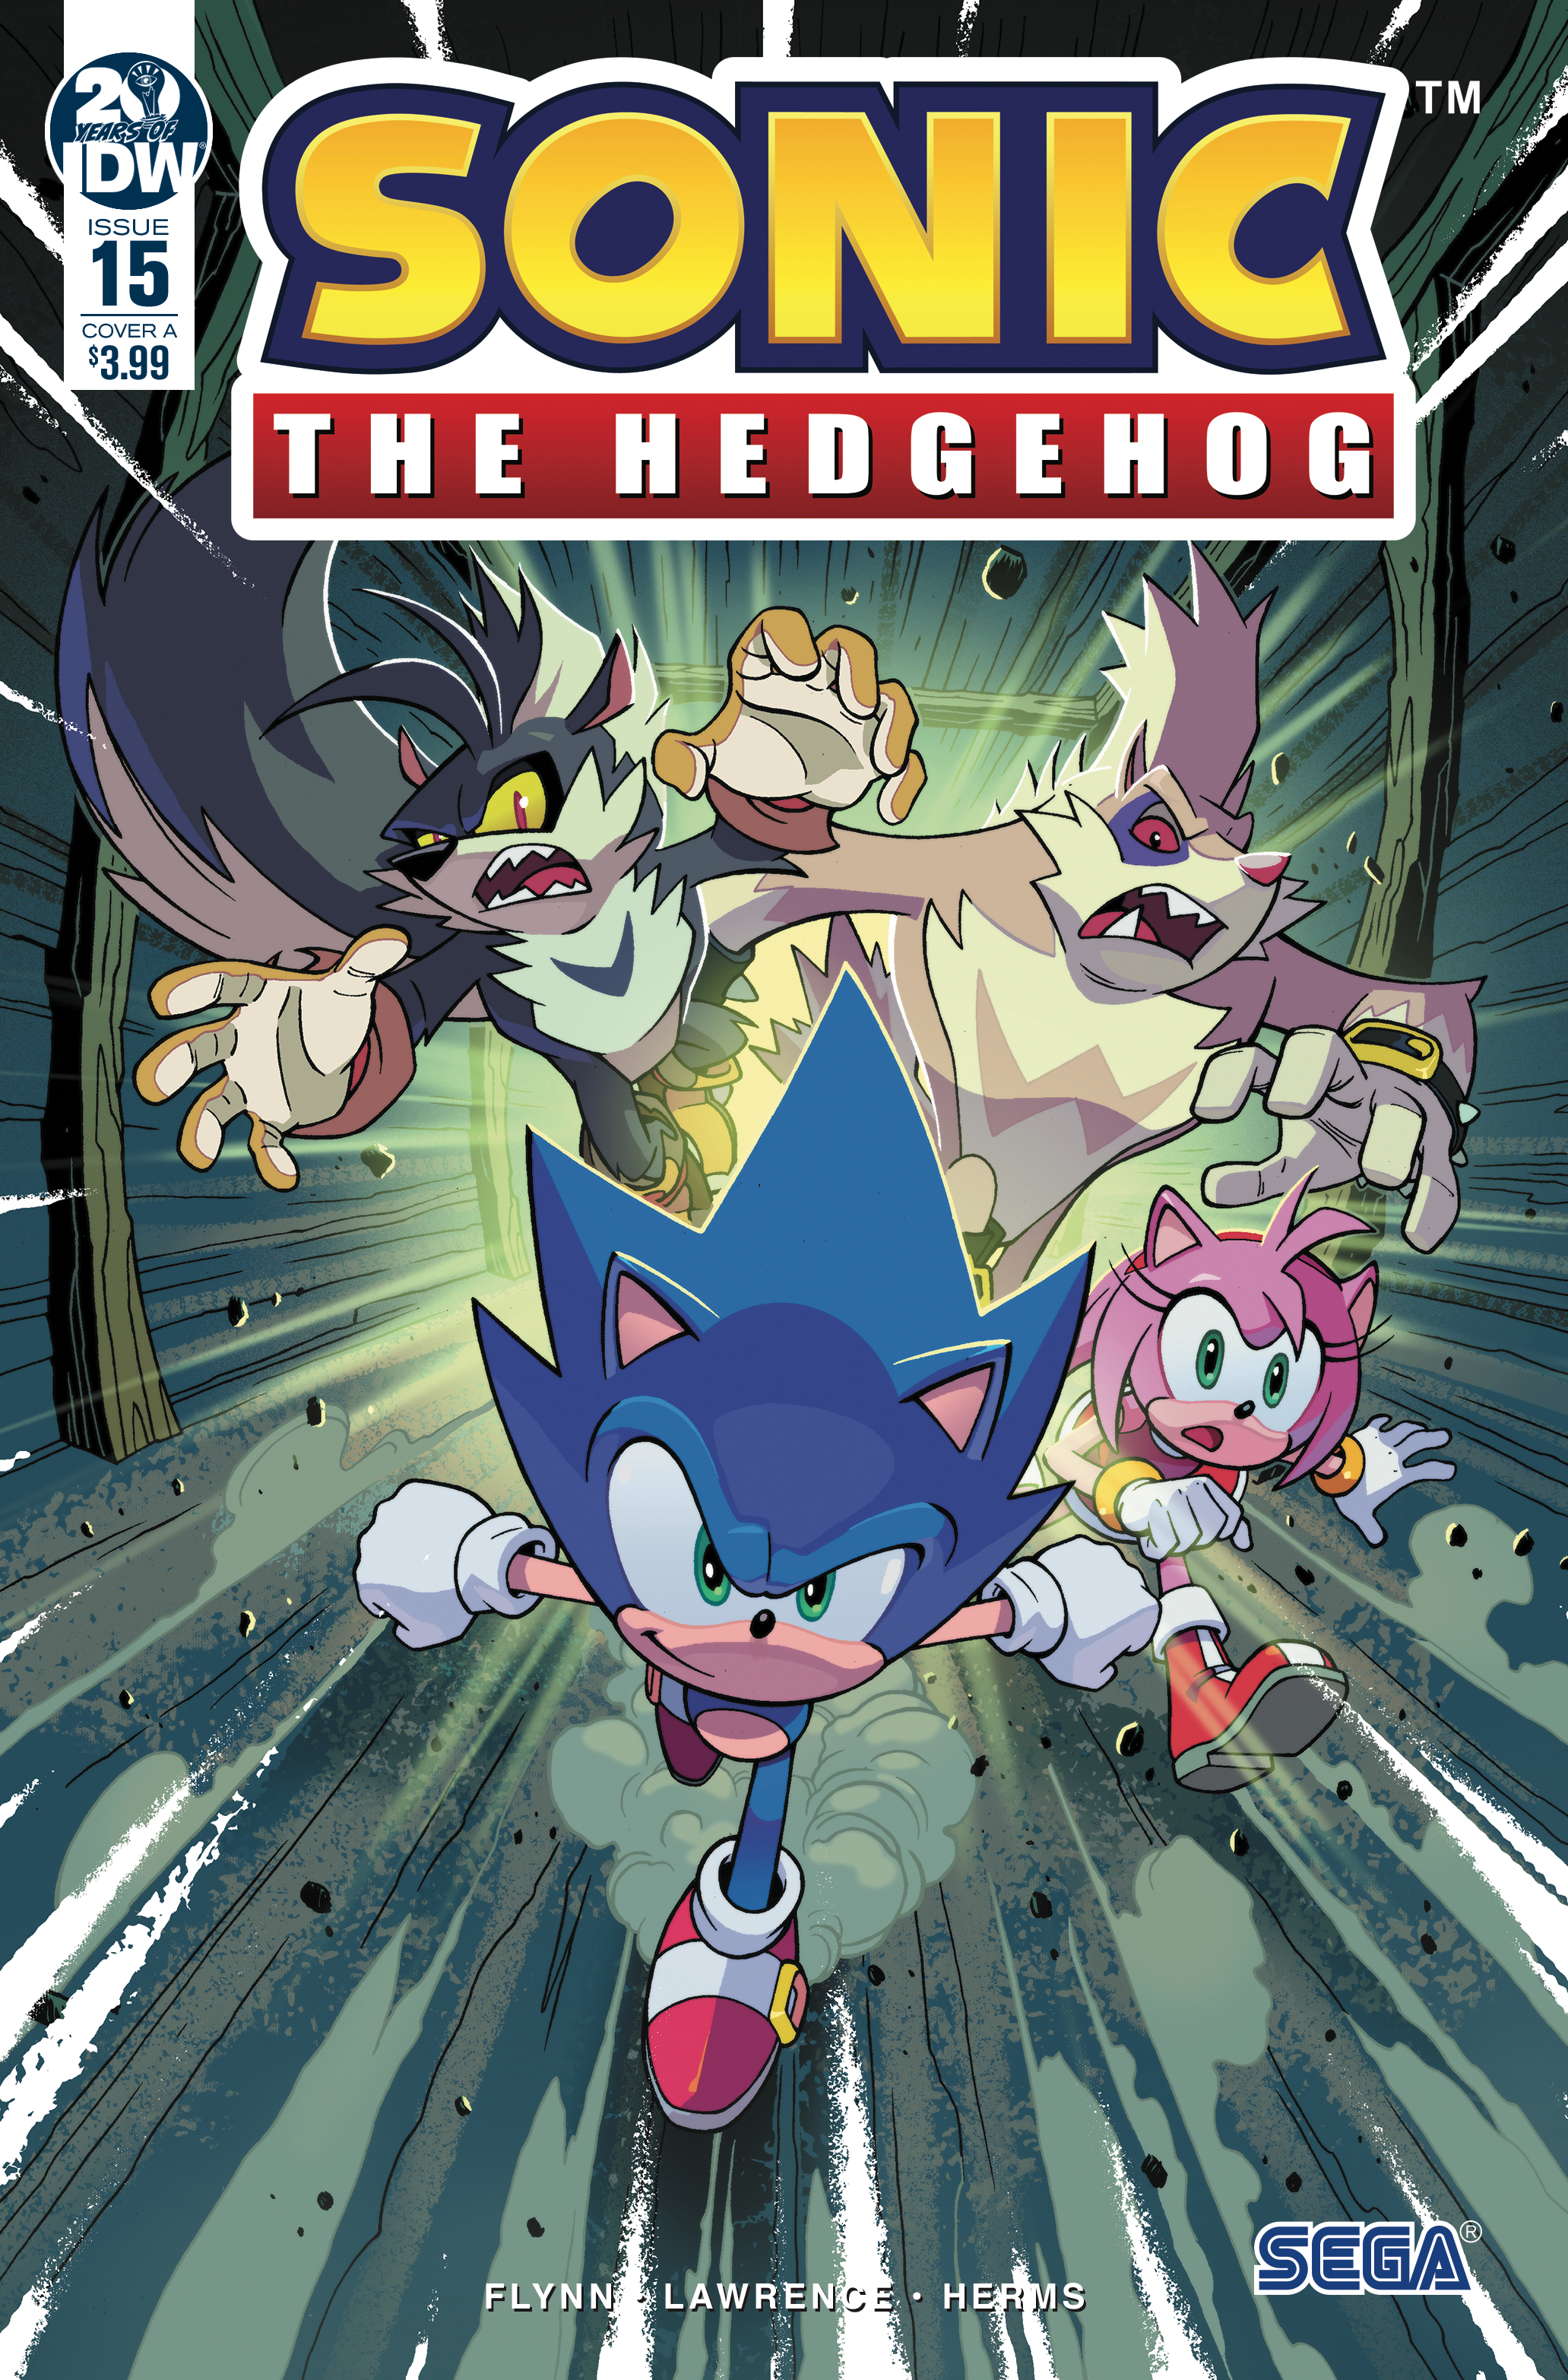 Idw Sonic The Hedgehog Issue 15 Sonic News Network Fandom